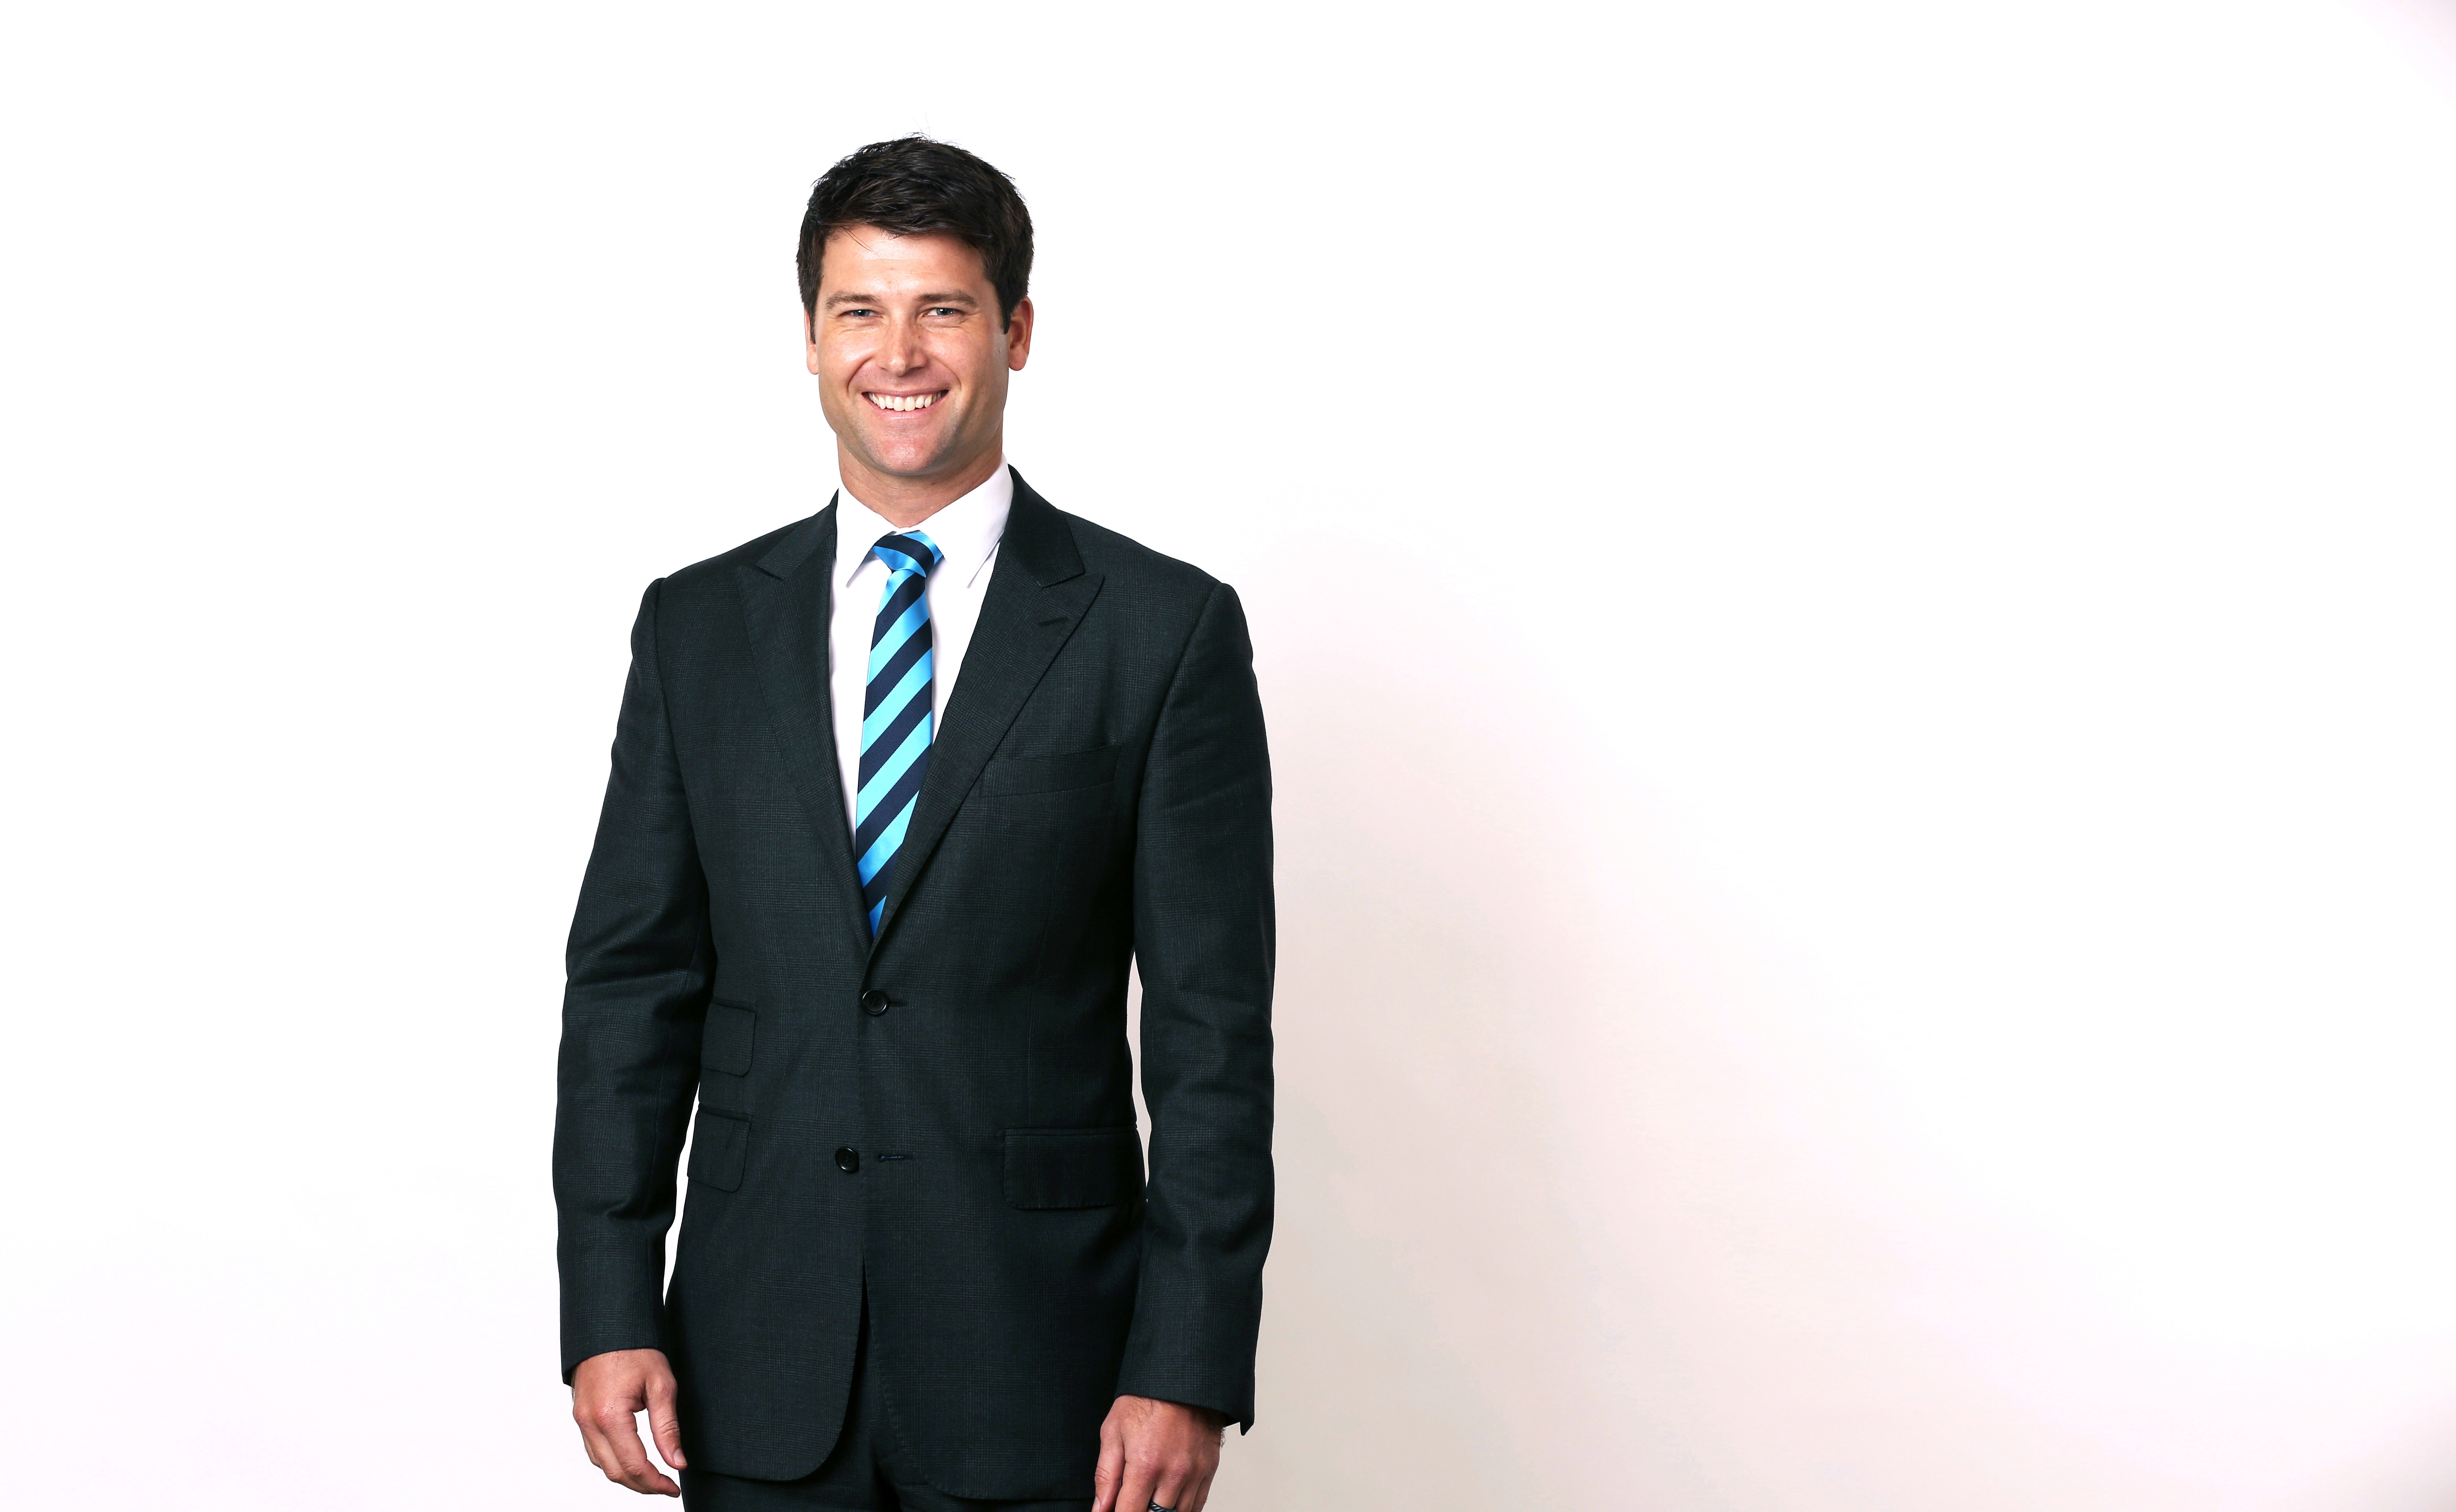 Forde Appointed as Harcourts Chief Operating Officer International